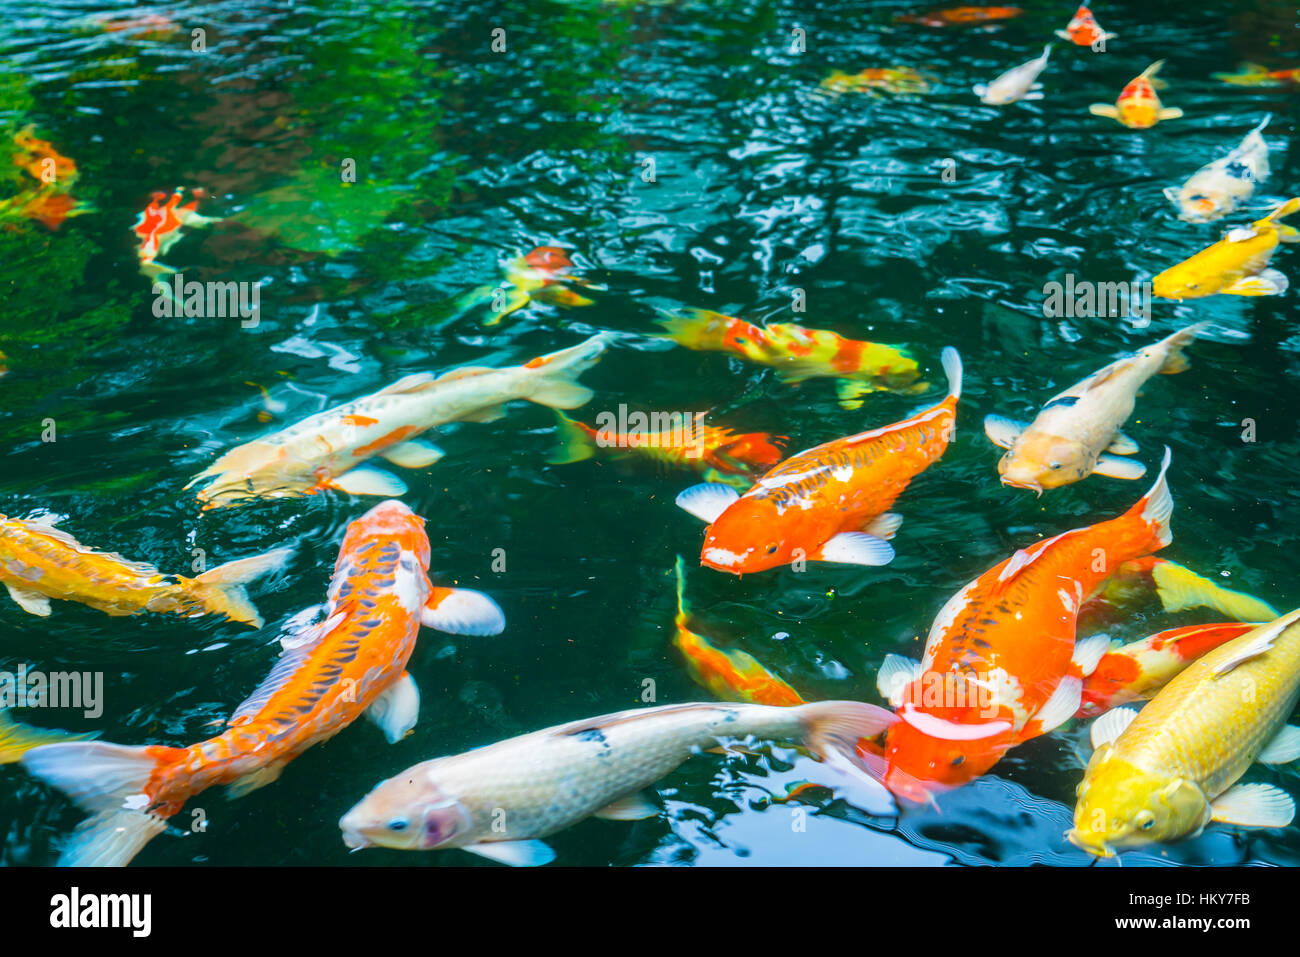 Colorful Koi fish swimming in water Stock Photo: 132749663 - Alamy